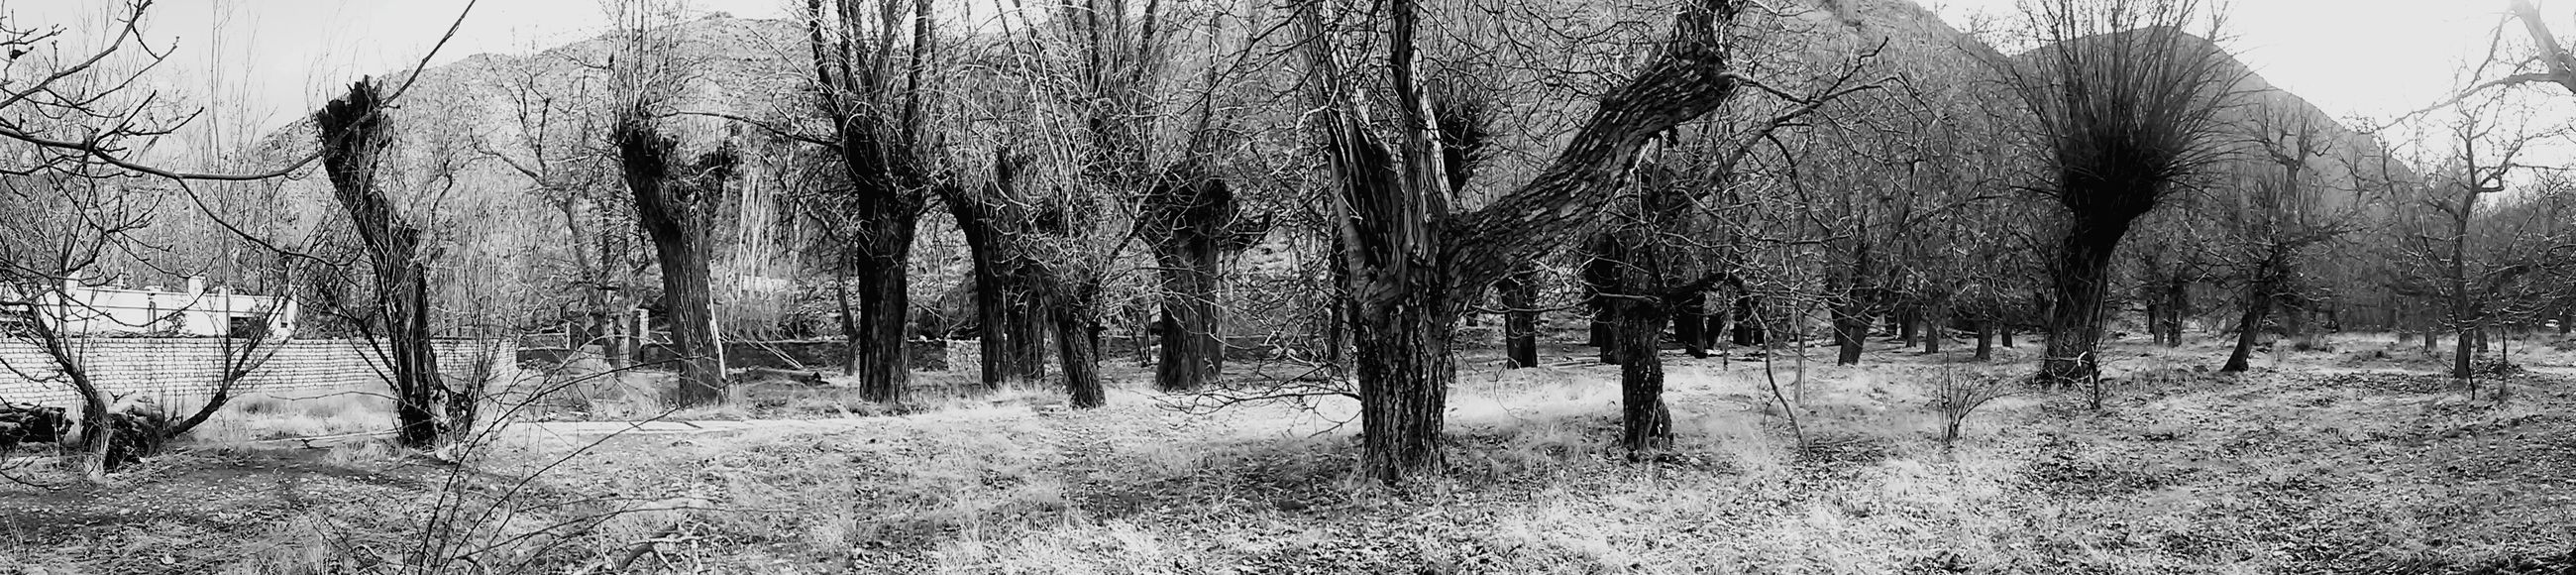 "The Last Panaroma Photo Of ""Freez hand"" Village Nature Tree Eyes New Eyes Free Life Style Should Be Here Silent Moment Iran Freez Hand Black&white Black & White Black And White Blackandwhite Blackandwhite Photography Black And White Photography Soul Full Frame MJ028"